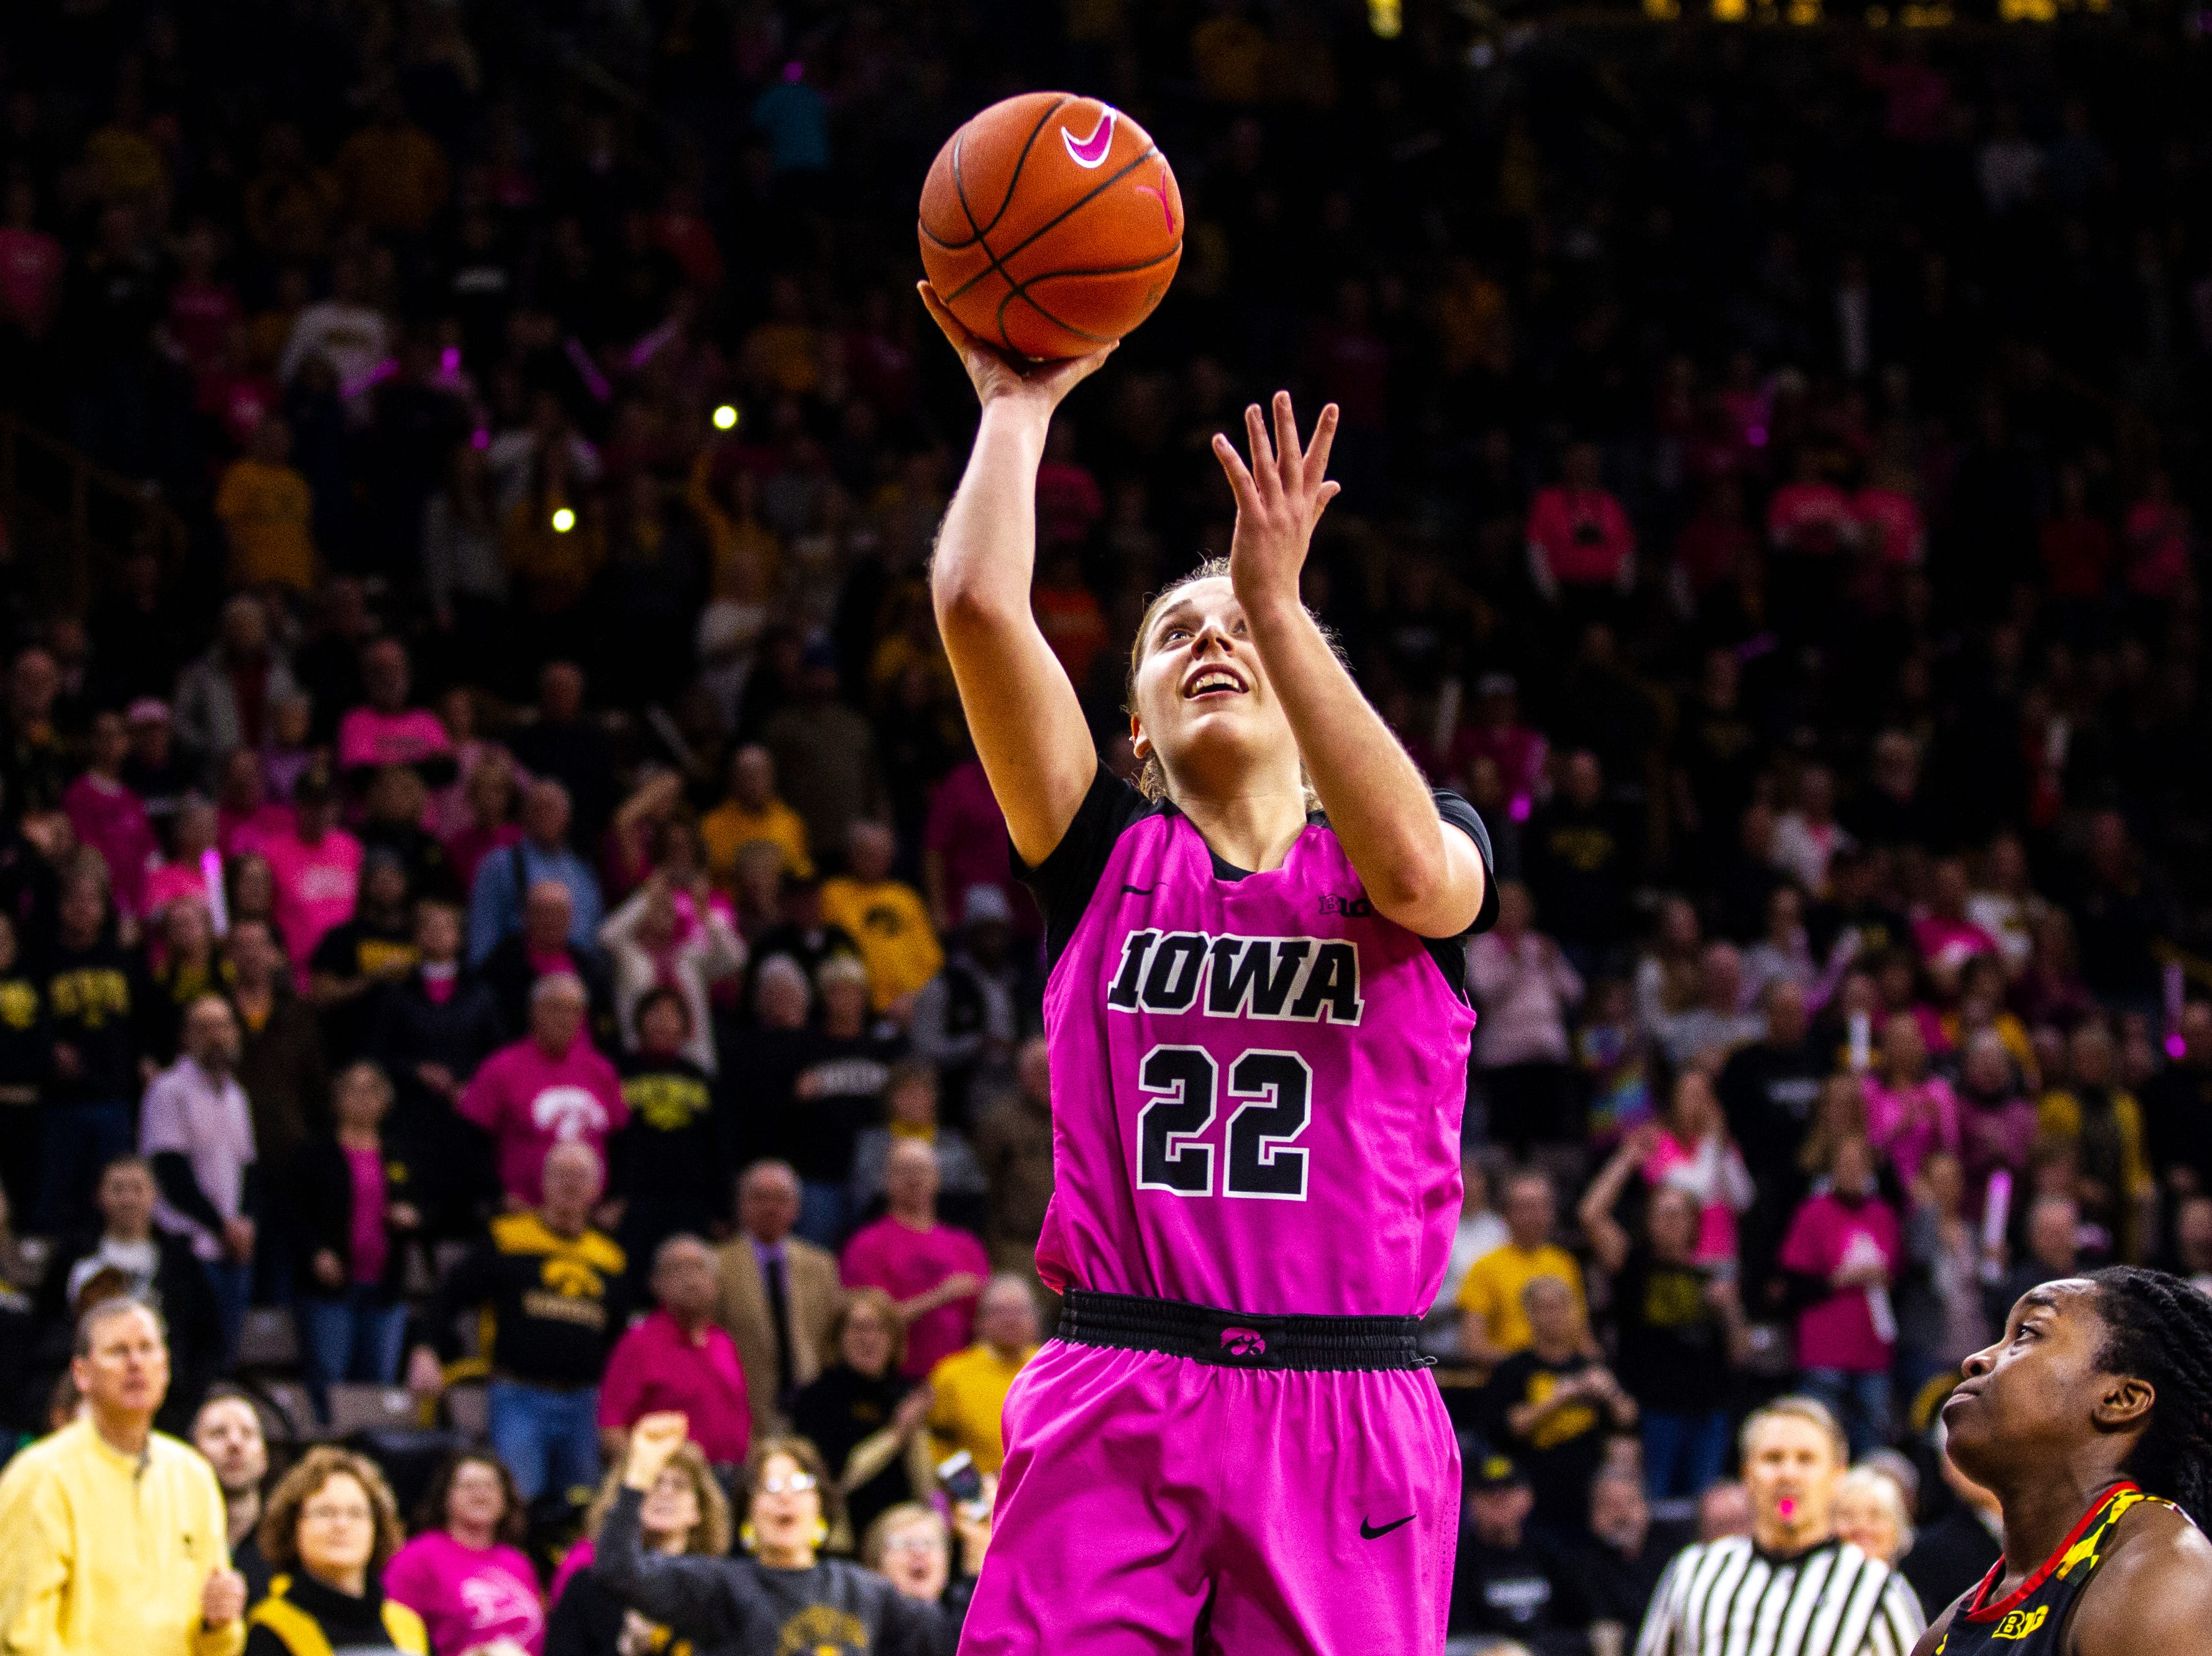 Iowa guard Kathleen Doyle (22) makes a layup during a NCAA Big Ten Conference women's basketball game on Sunday, Feb. 17, 2019 at Carver-Hawkeye Arena in Iowa City, Iowa.